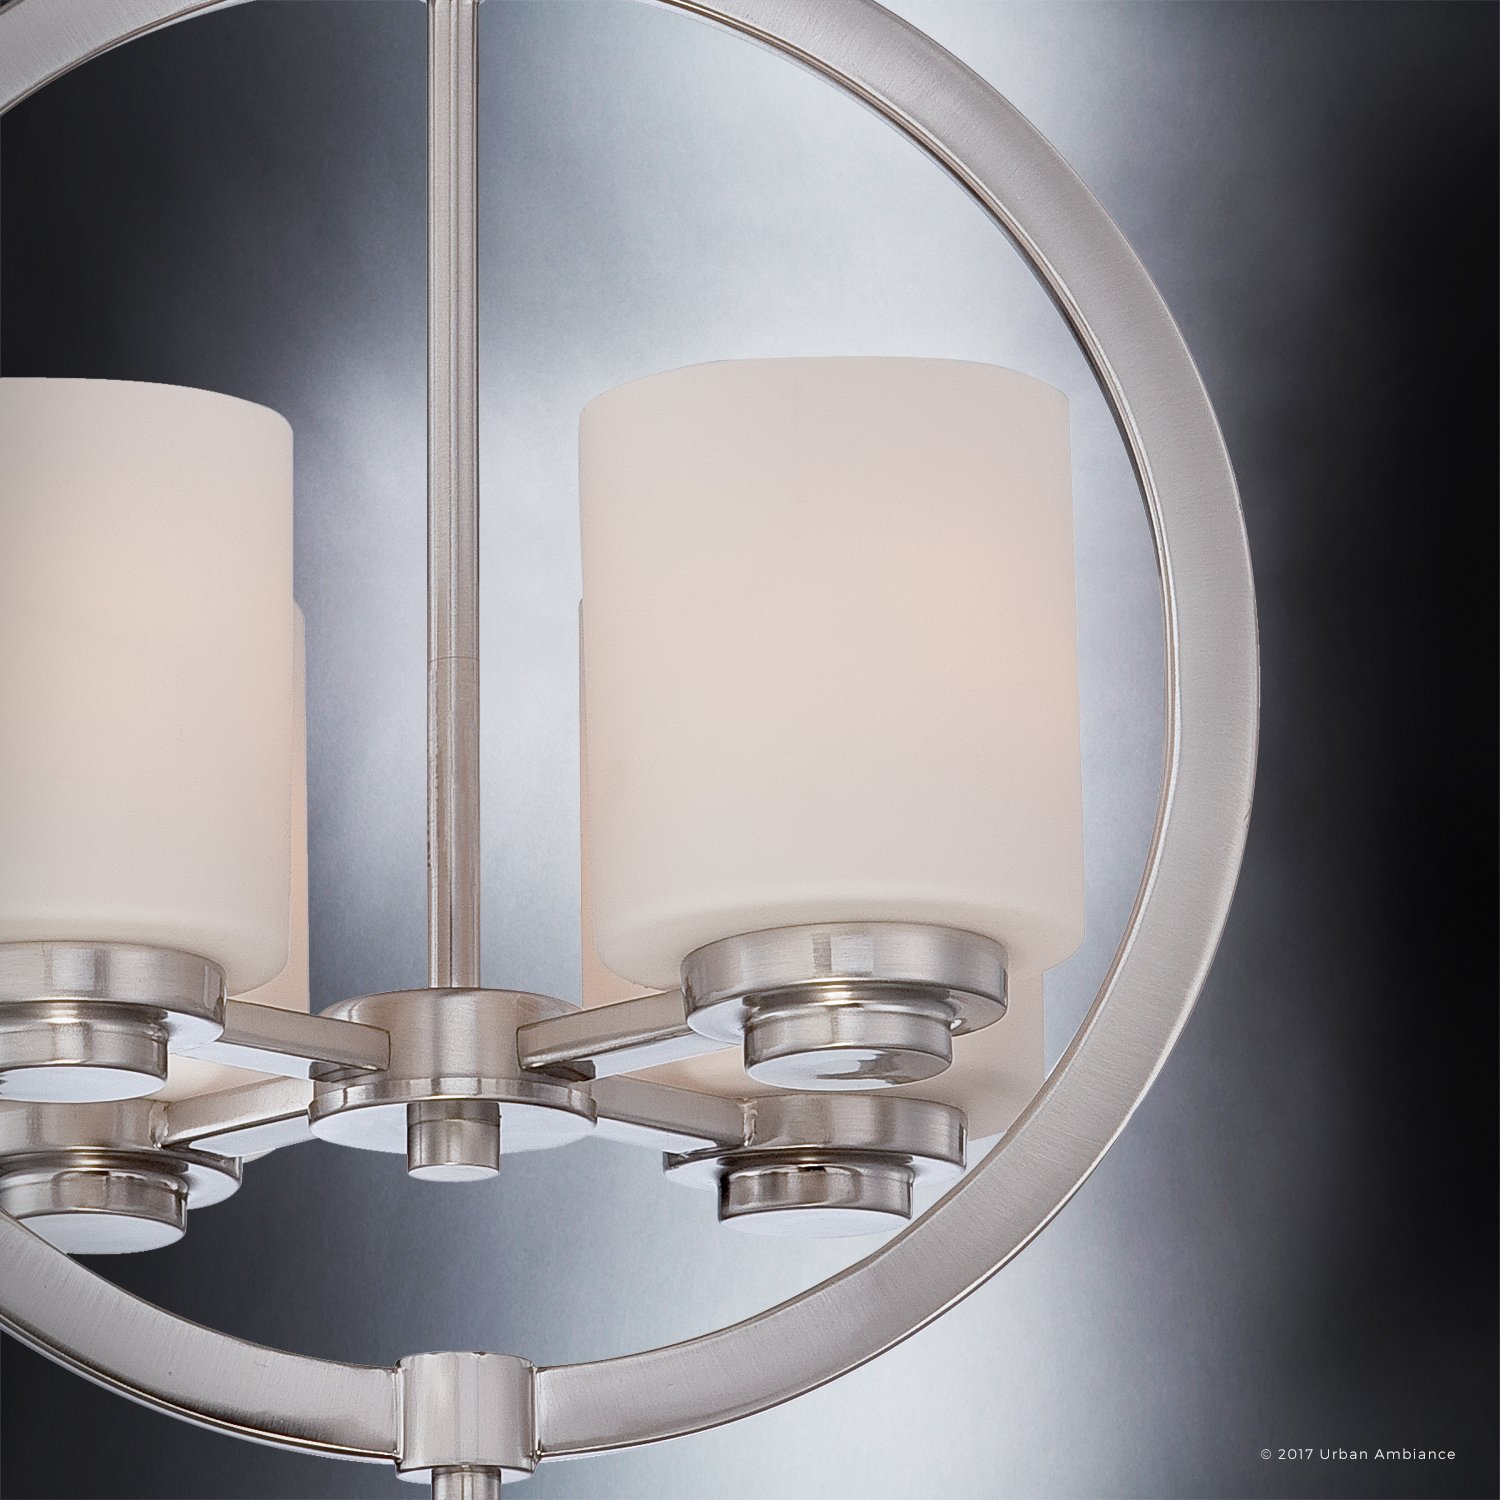 Luxury Contemporary Semi-Flush Ceiling Light, Medium Size: 15''H x 14''W, with Traditional Style Elements, Globe Design, Pretty Brushed Nickel Finish and Opal Etched Glass, UQL2171 by Urban Ambiance by Urban Ambiance (Image #5)